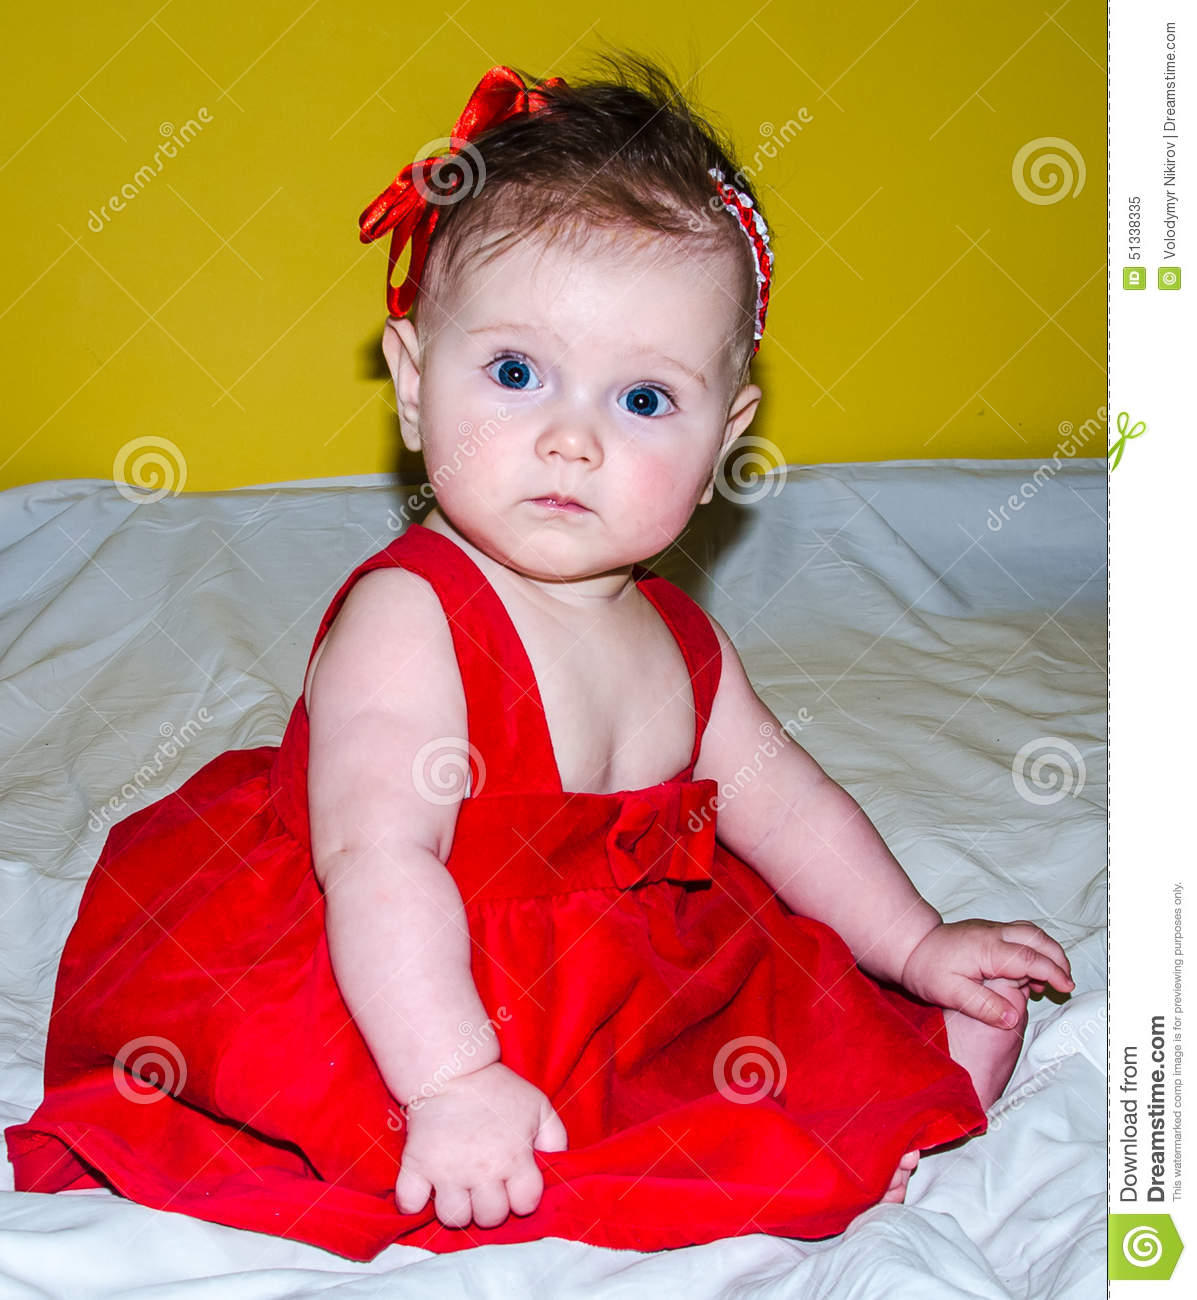 7ca7466b9cc Portrait of a beautiful little baby girl in a red dress with a bow on her